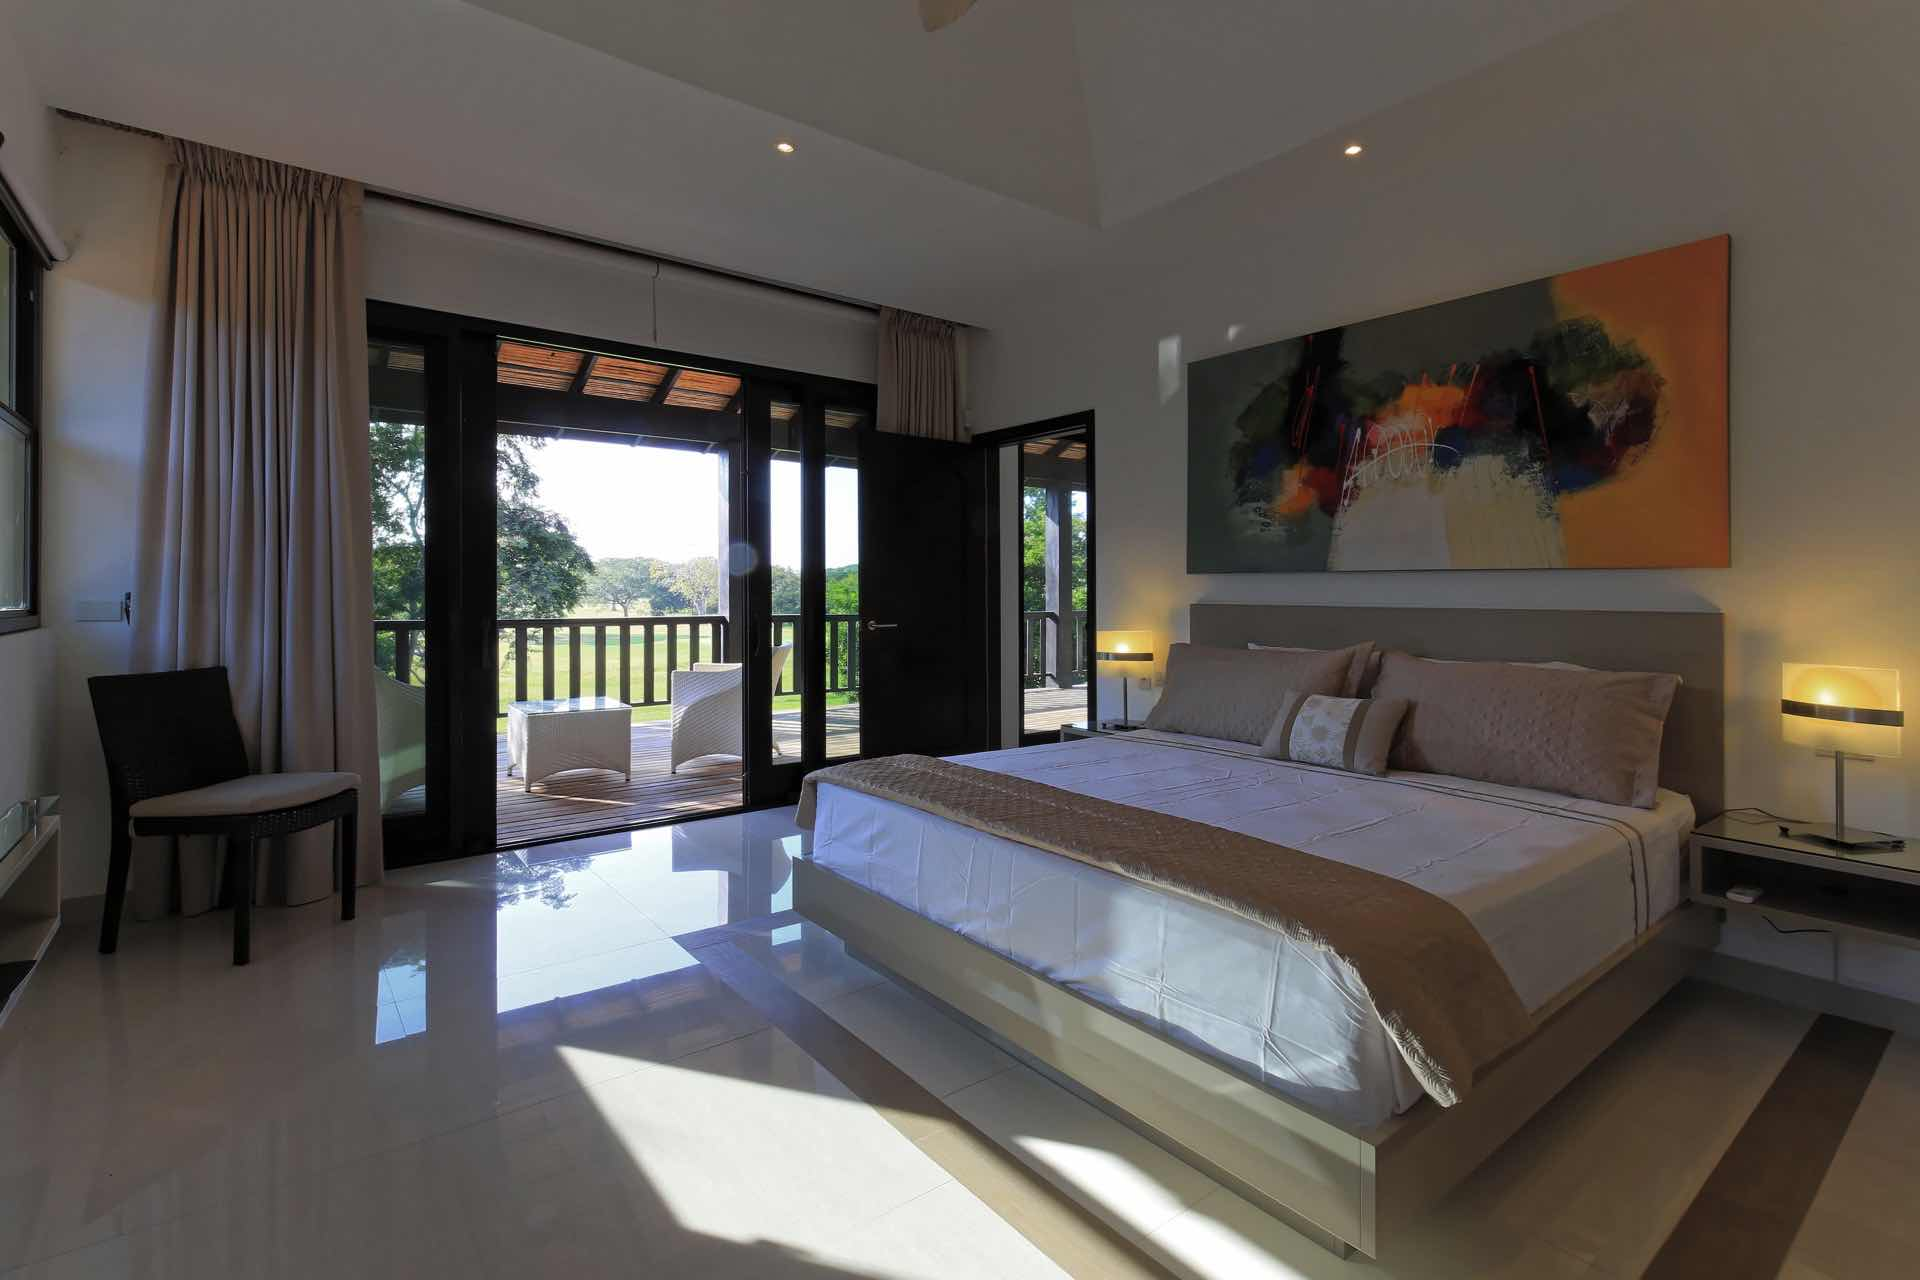 master suite opens to balcony and overlooks golf course